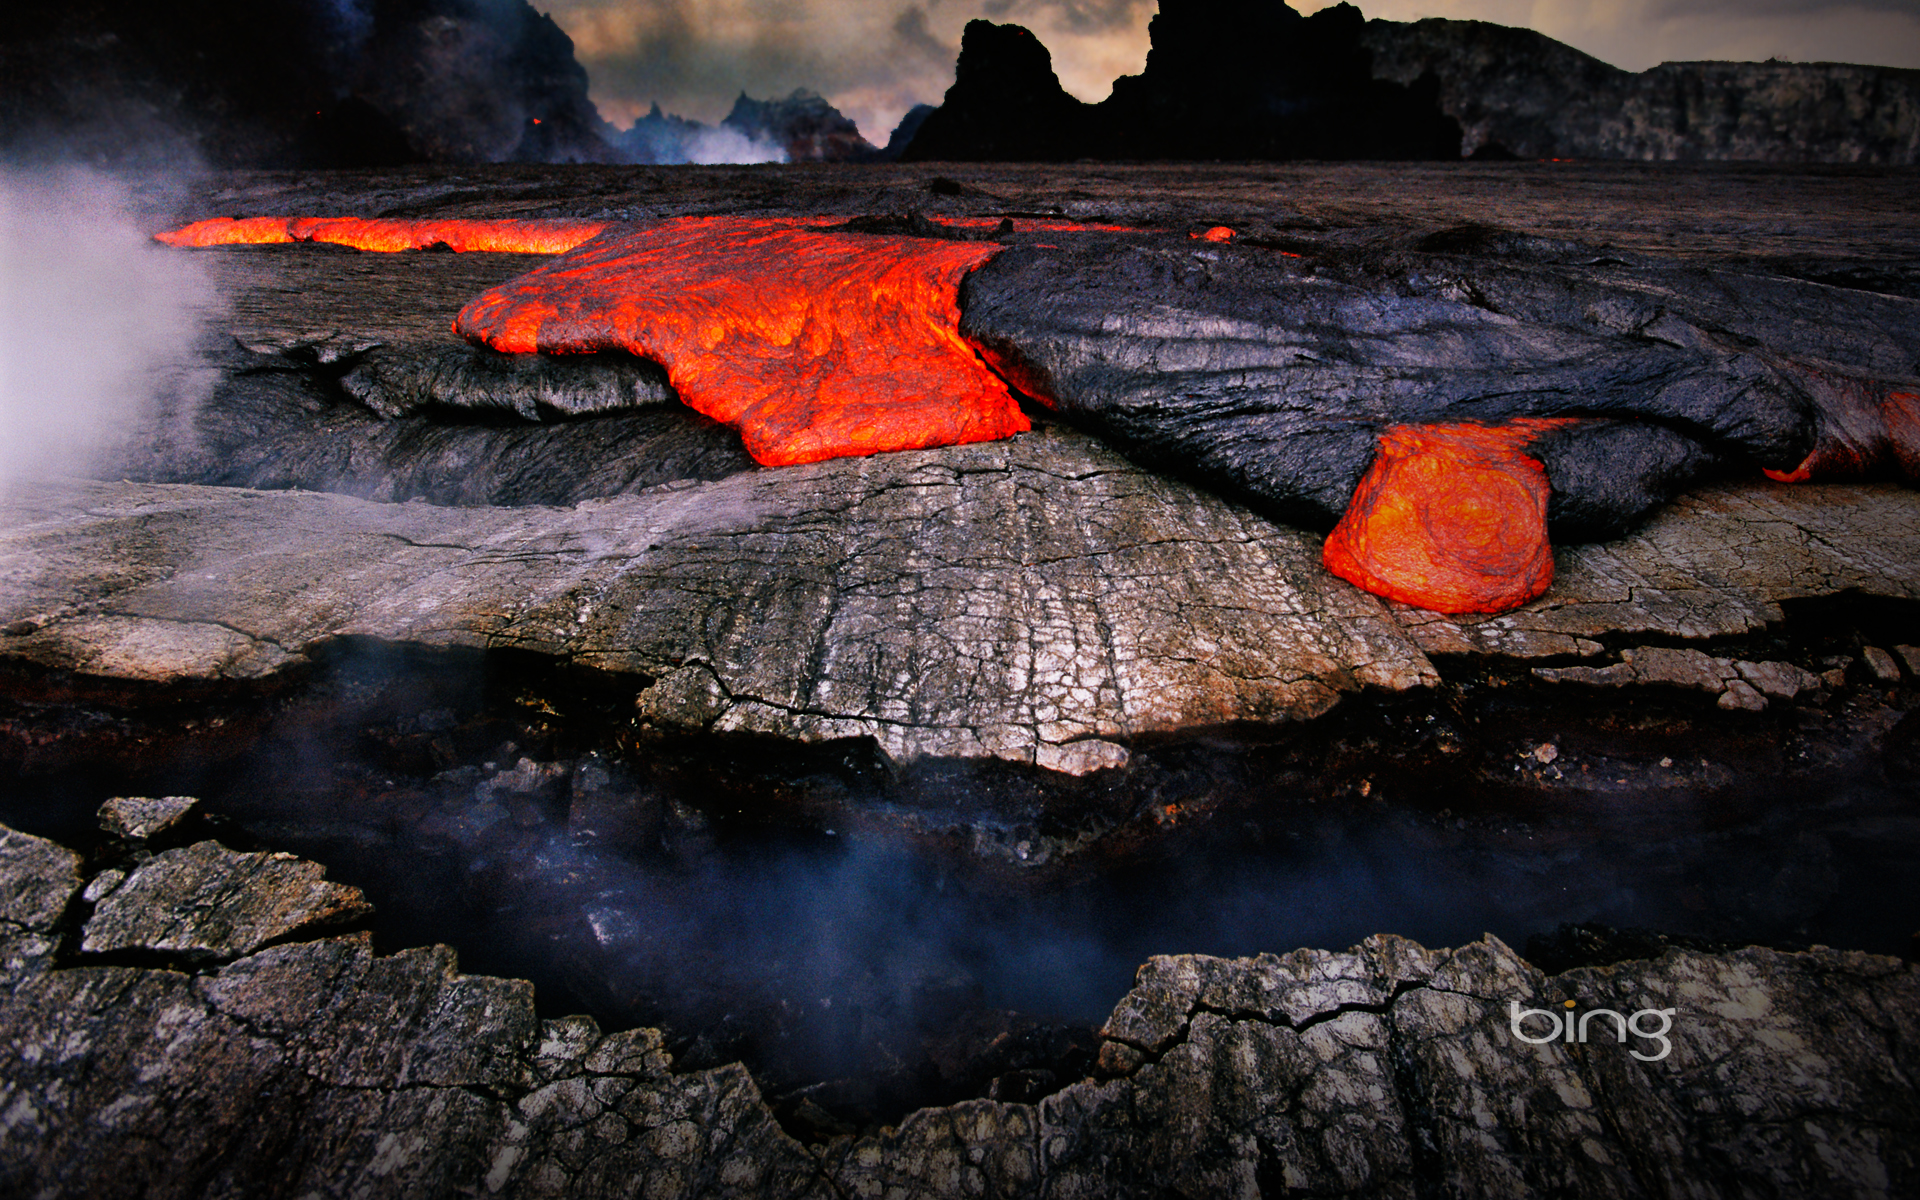 Volcano Of Bing Hawaii Lava Windowstheme Wallpaper with 1920x1200